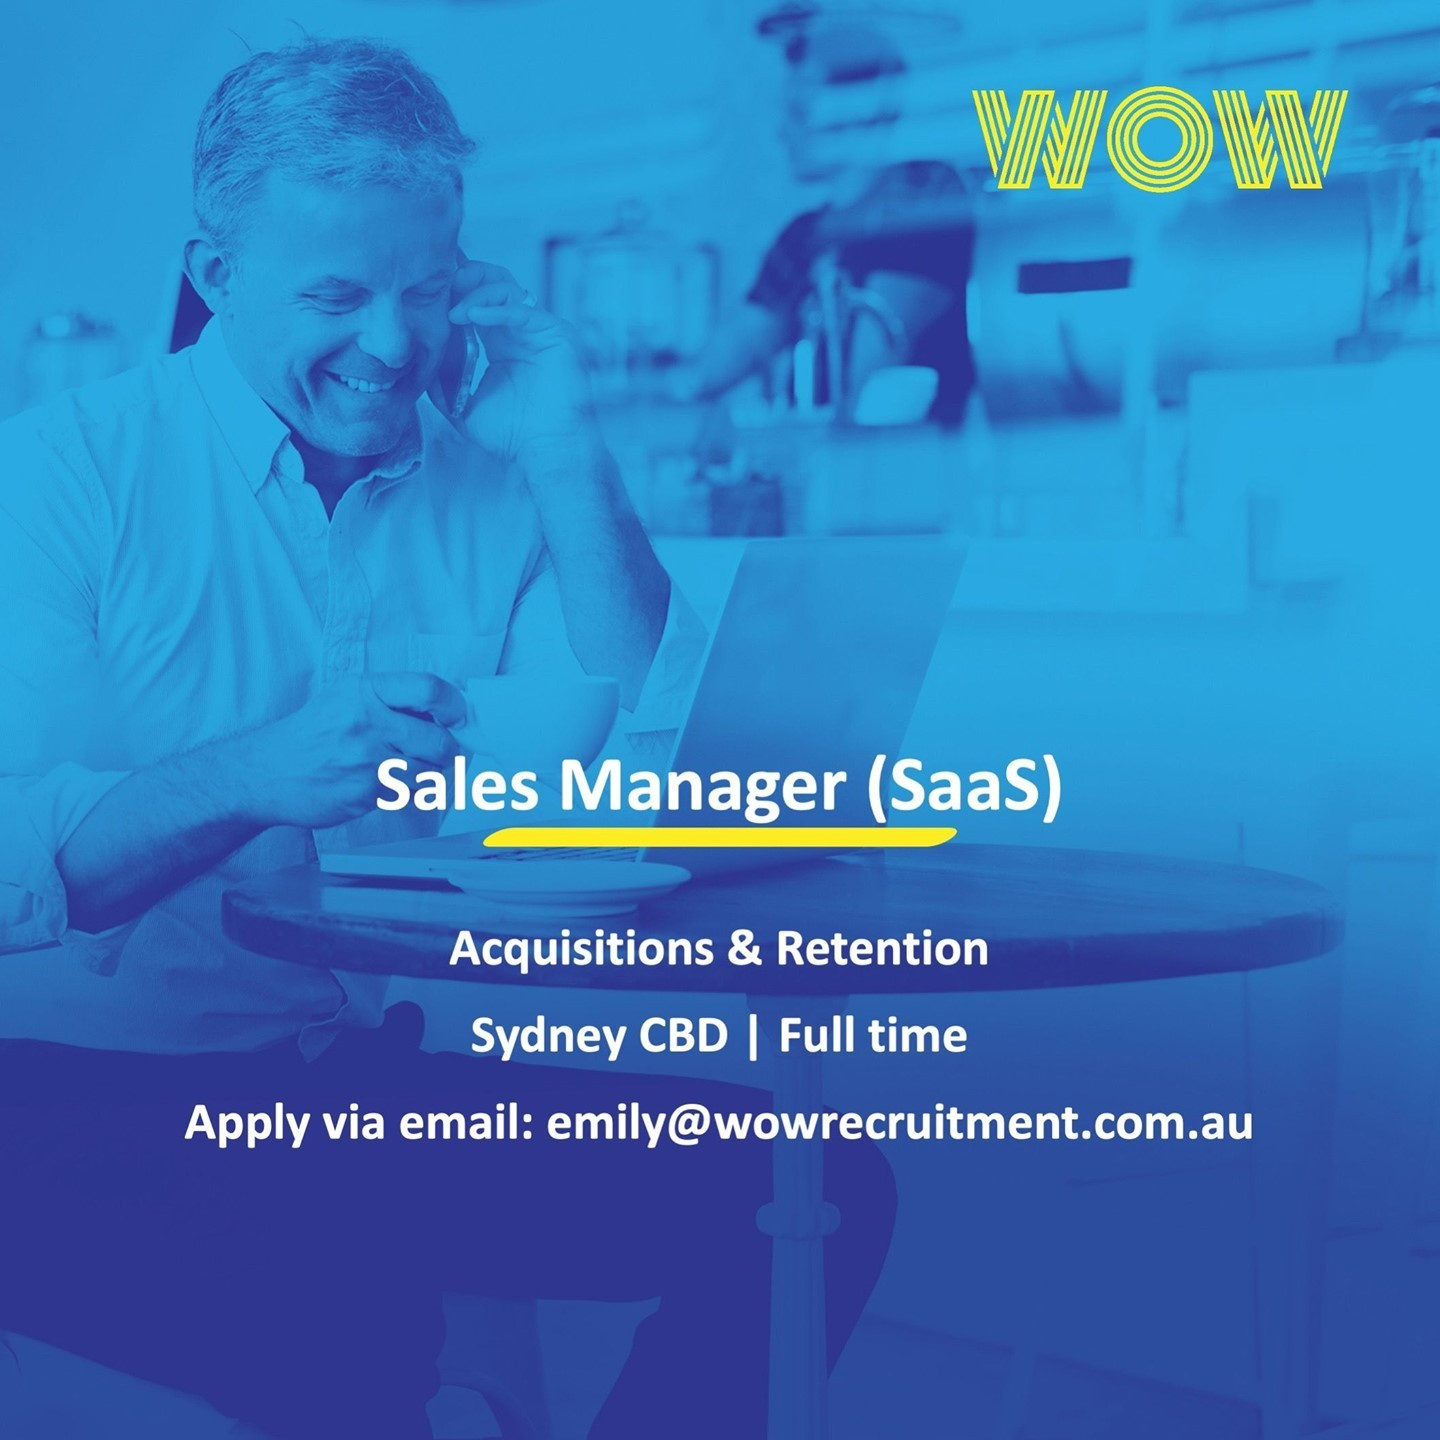 WOW Recruitment are recruiting 2 x Sales Manager roles for a SaaS / Tech Start Up in Sydney CBD, one focused on Acquisitions & the other on Retention. Please reach out to Emily McLed via email for more info!  ⠀⠀#Sales #SaaS #Tech #DoWhatYouLove #WorkHappy